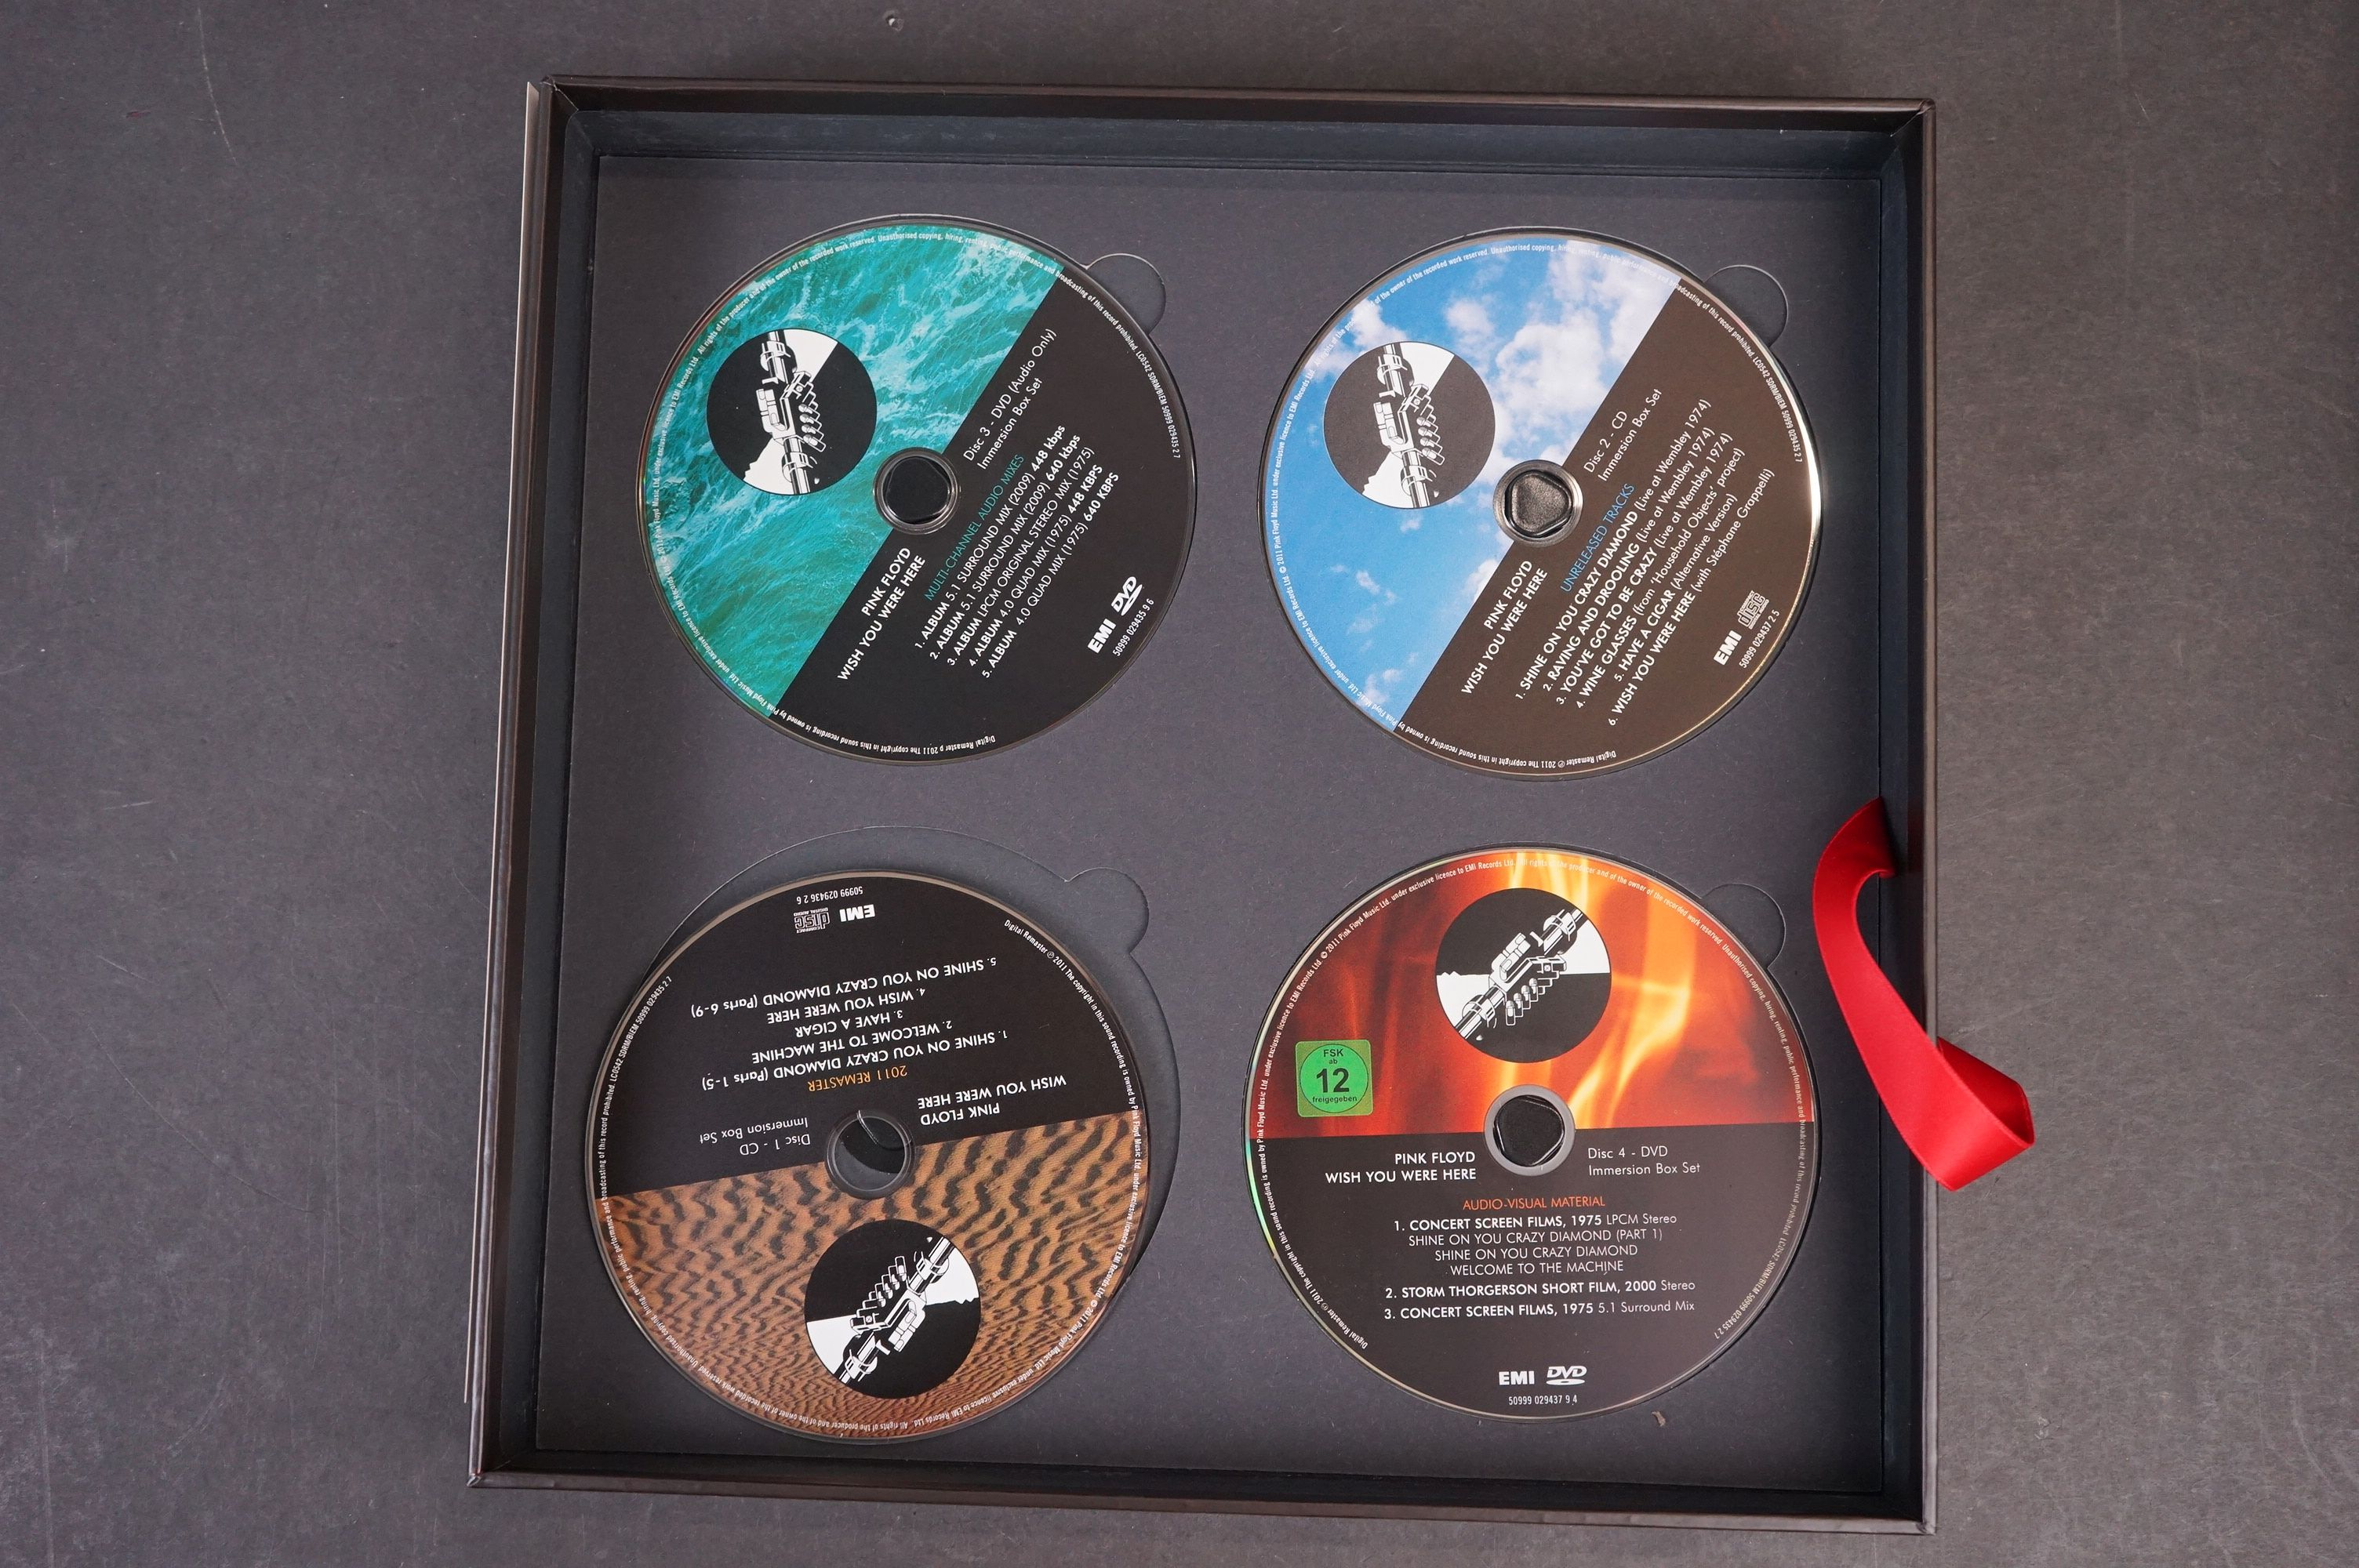 CD / DVD / Bluray - Pink Floyd Wish You Were Here 5 disc box set ex - Image 11 of 13